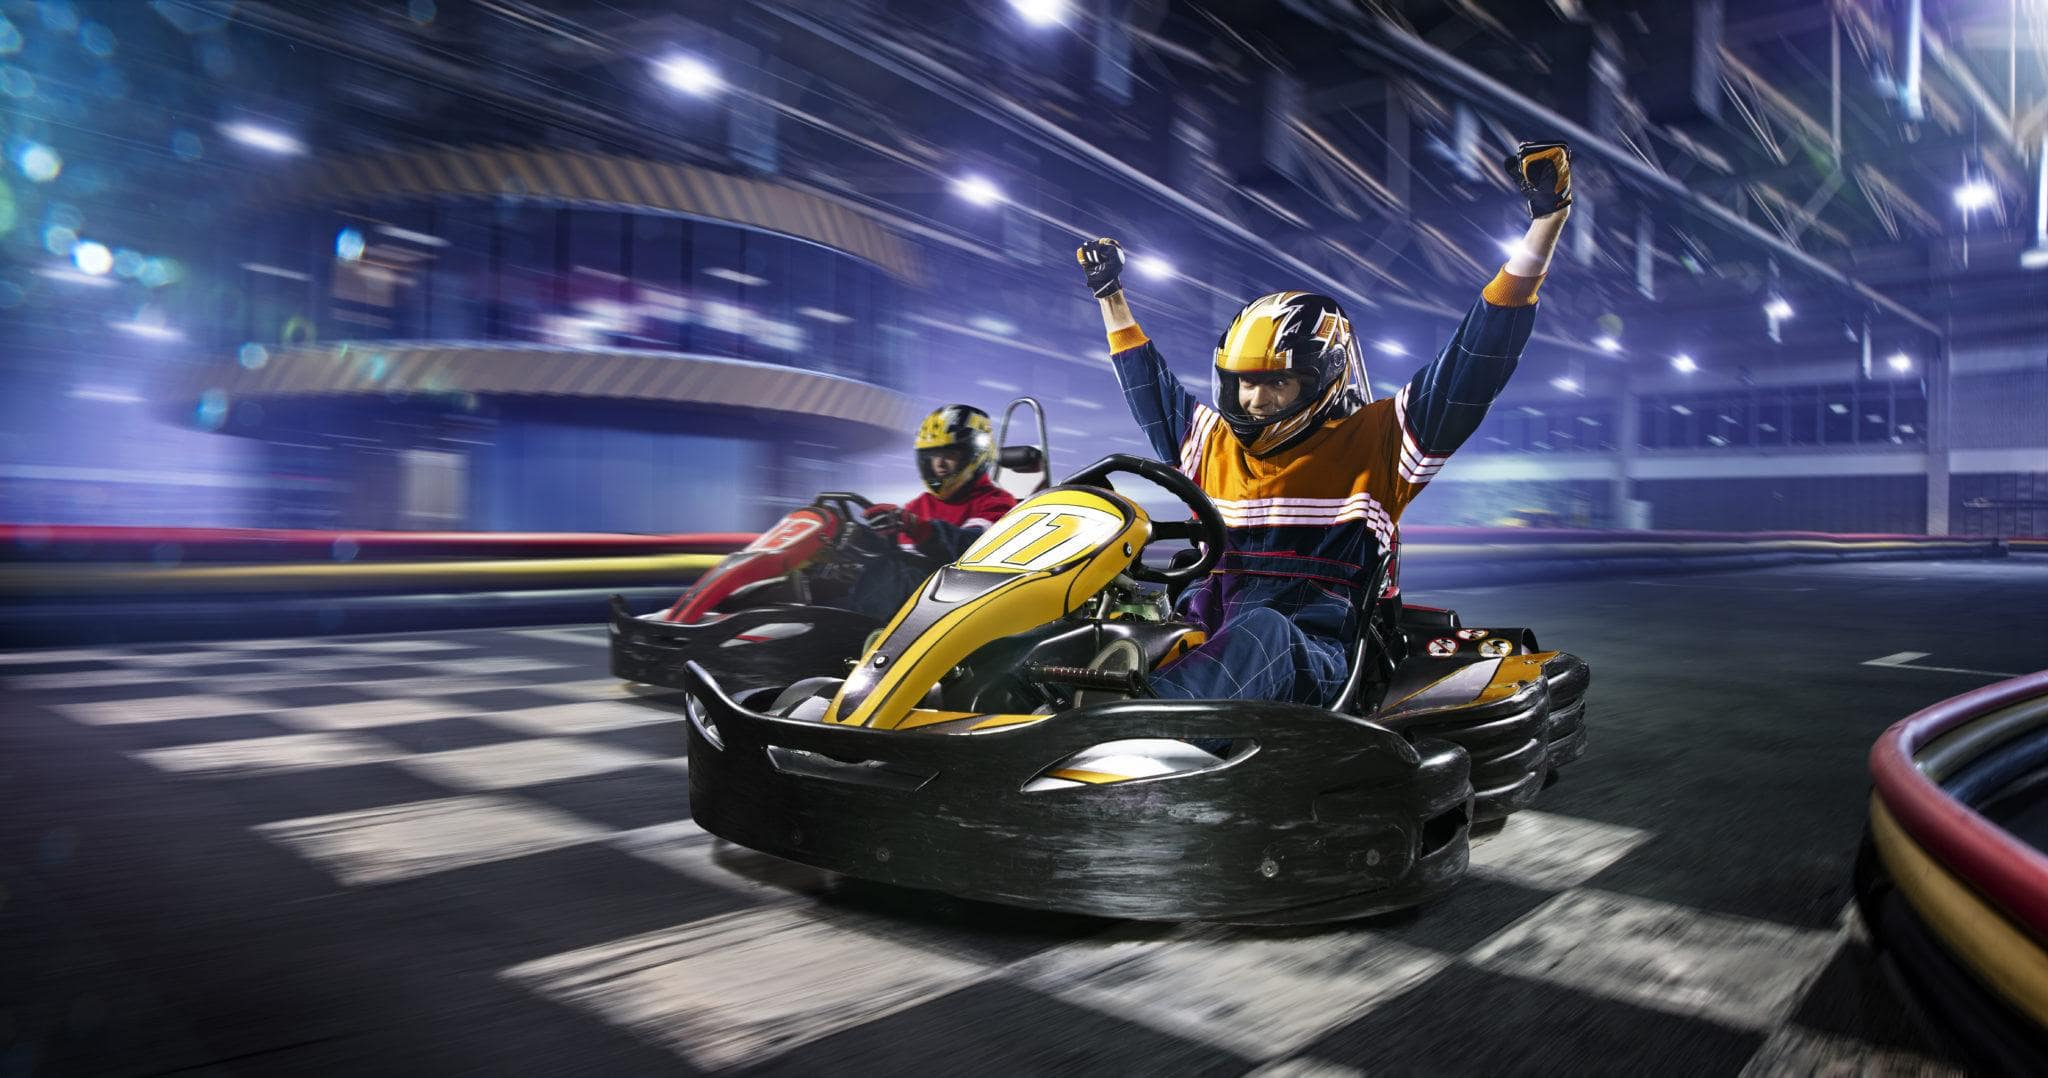 Drive SMAAASH Sky Karts around a two-level track ~ 30 Fun Things to Do at Mall of America Besides Shop